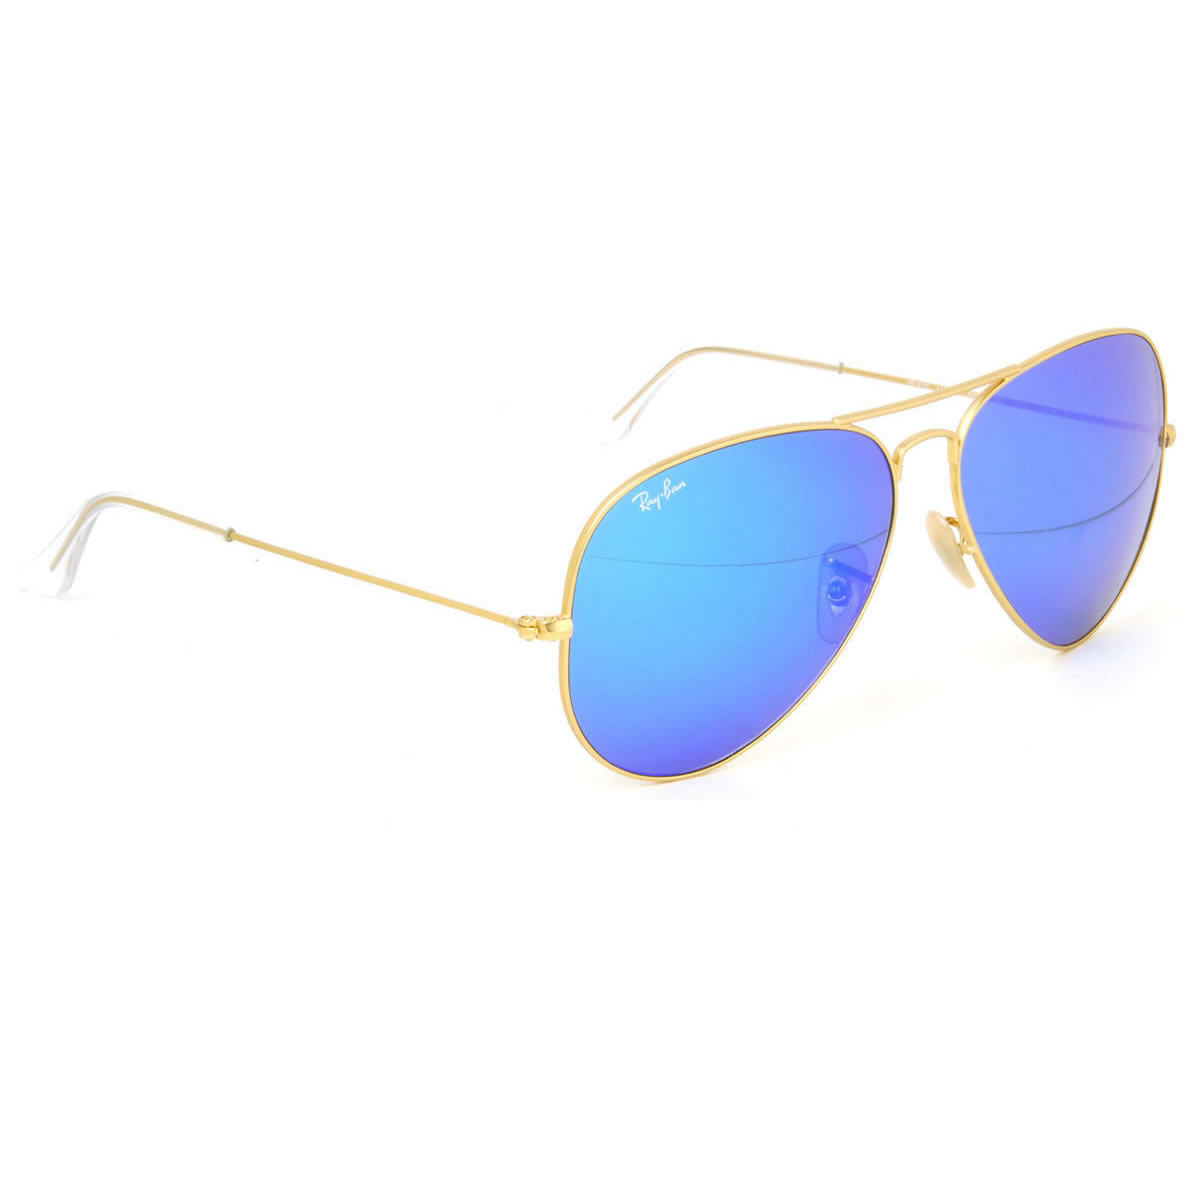 6bb5f3765d2 Ray-Ban Sunglasses RB3025 112 17 62size(LARGE) ORIGINAL AVIATOR GENUINE NEW rayban  ray ban